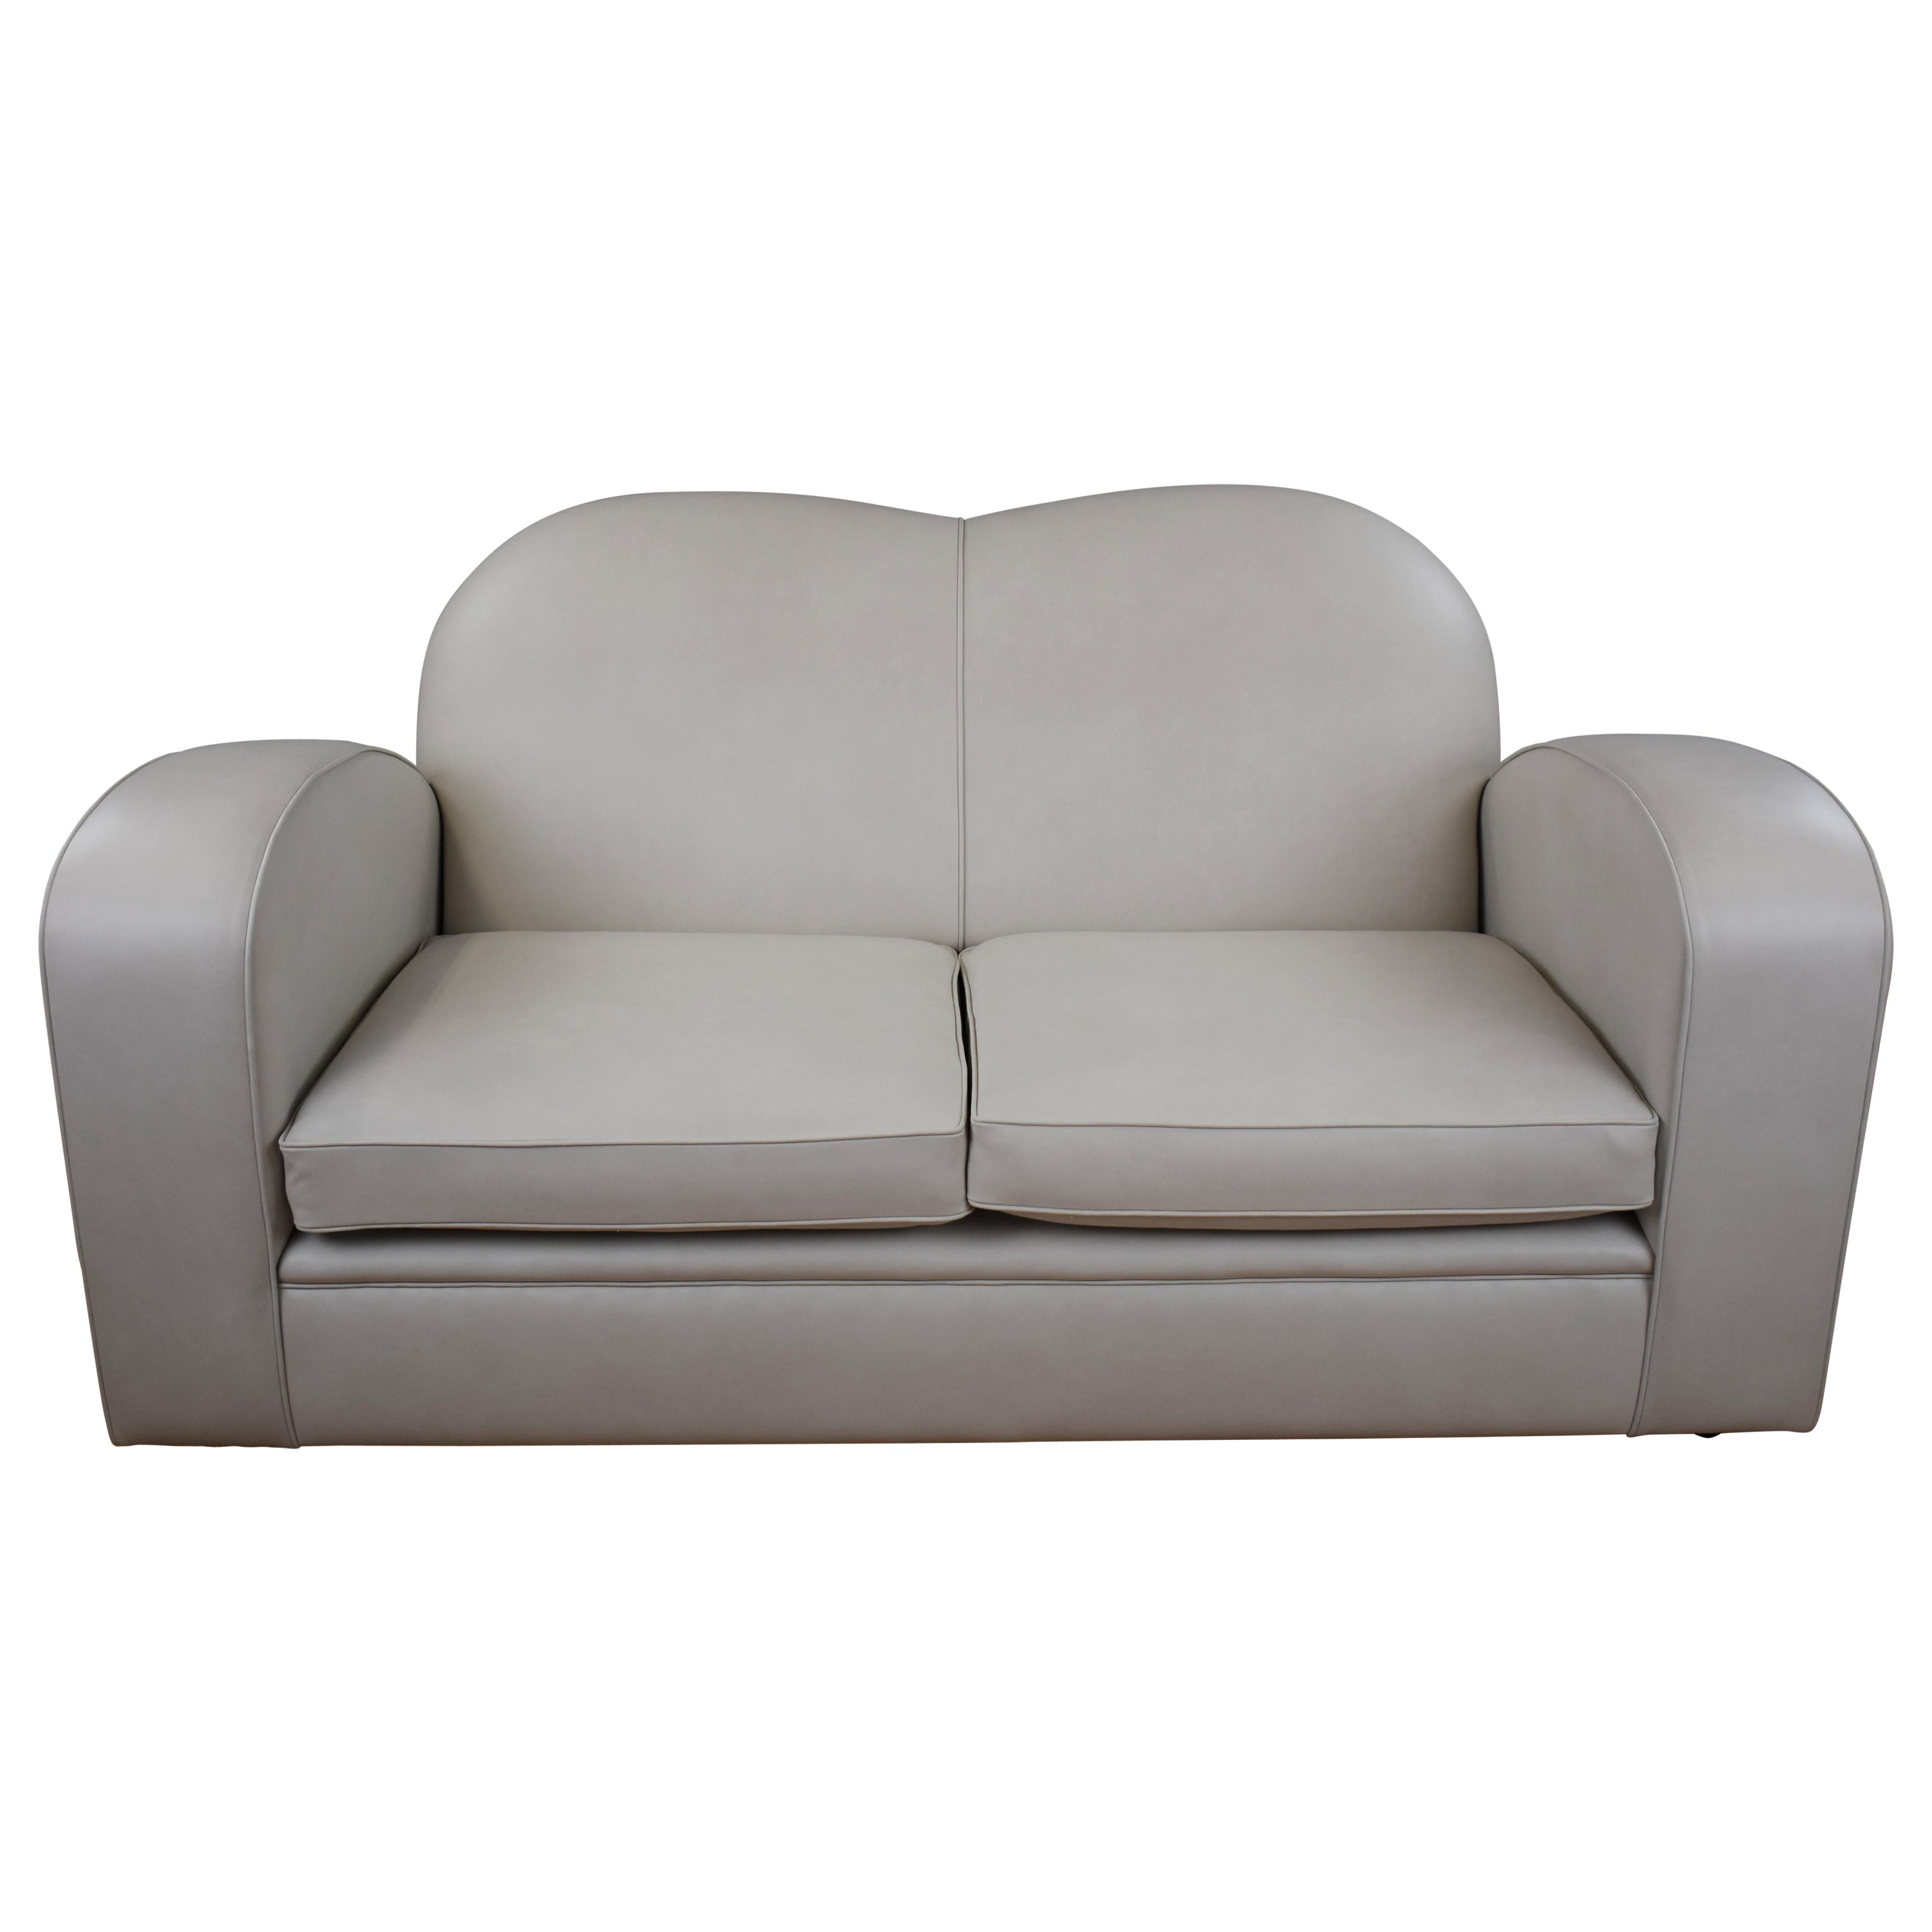 Art Deco Style Leather Two-Seat Sofa